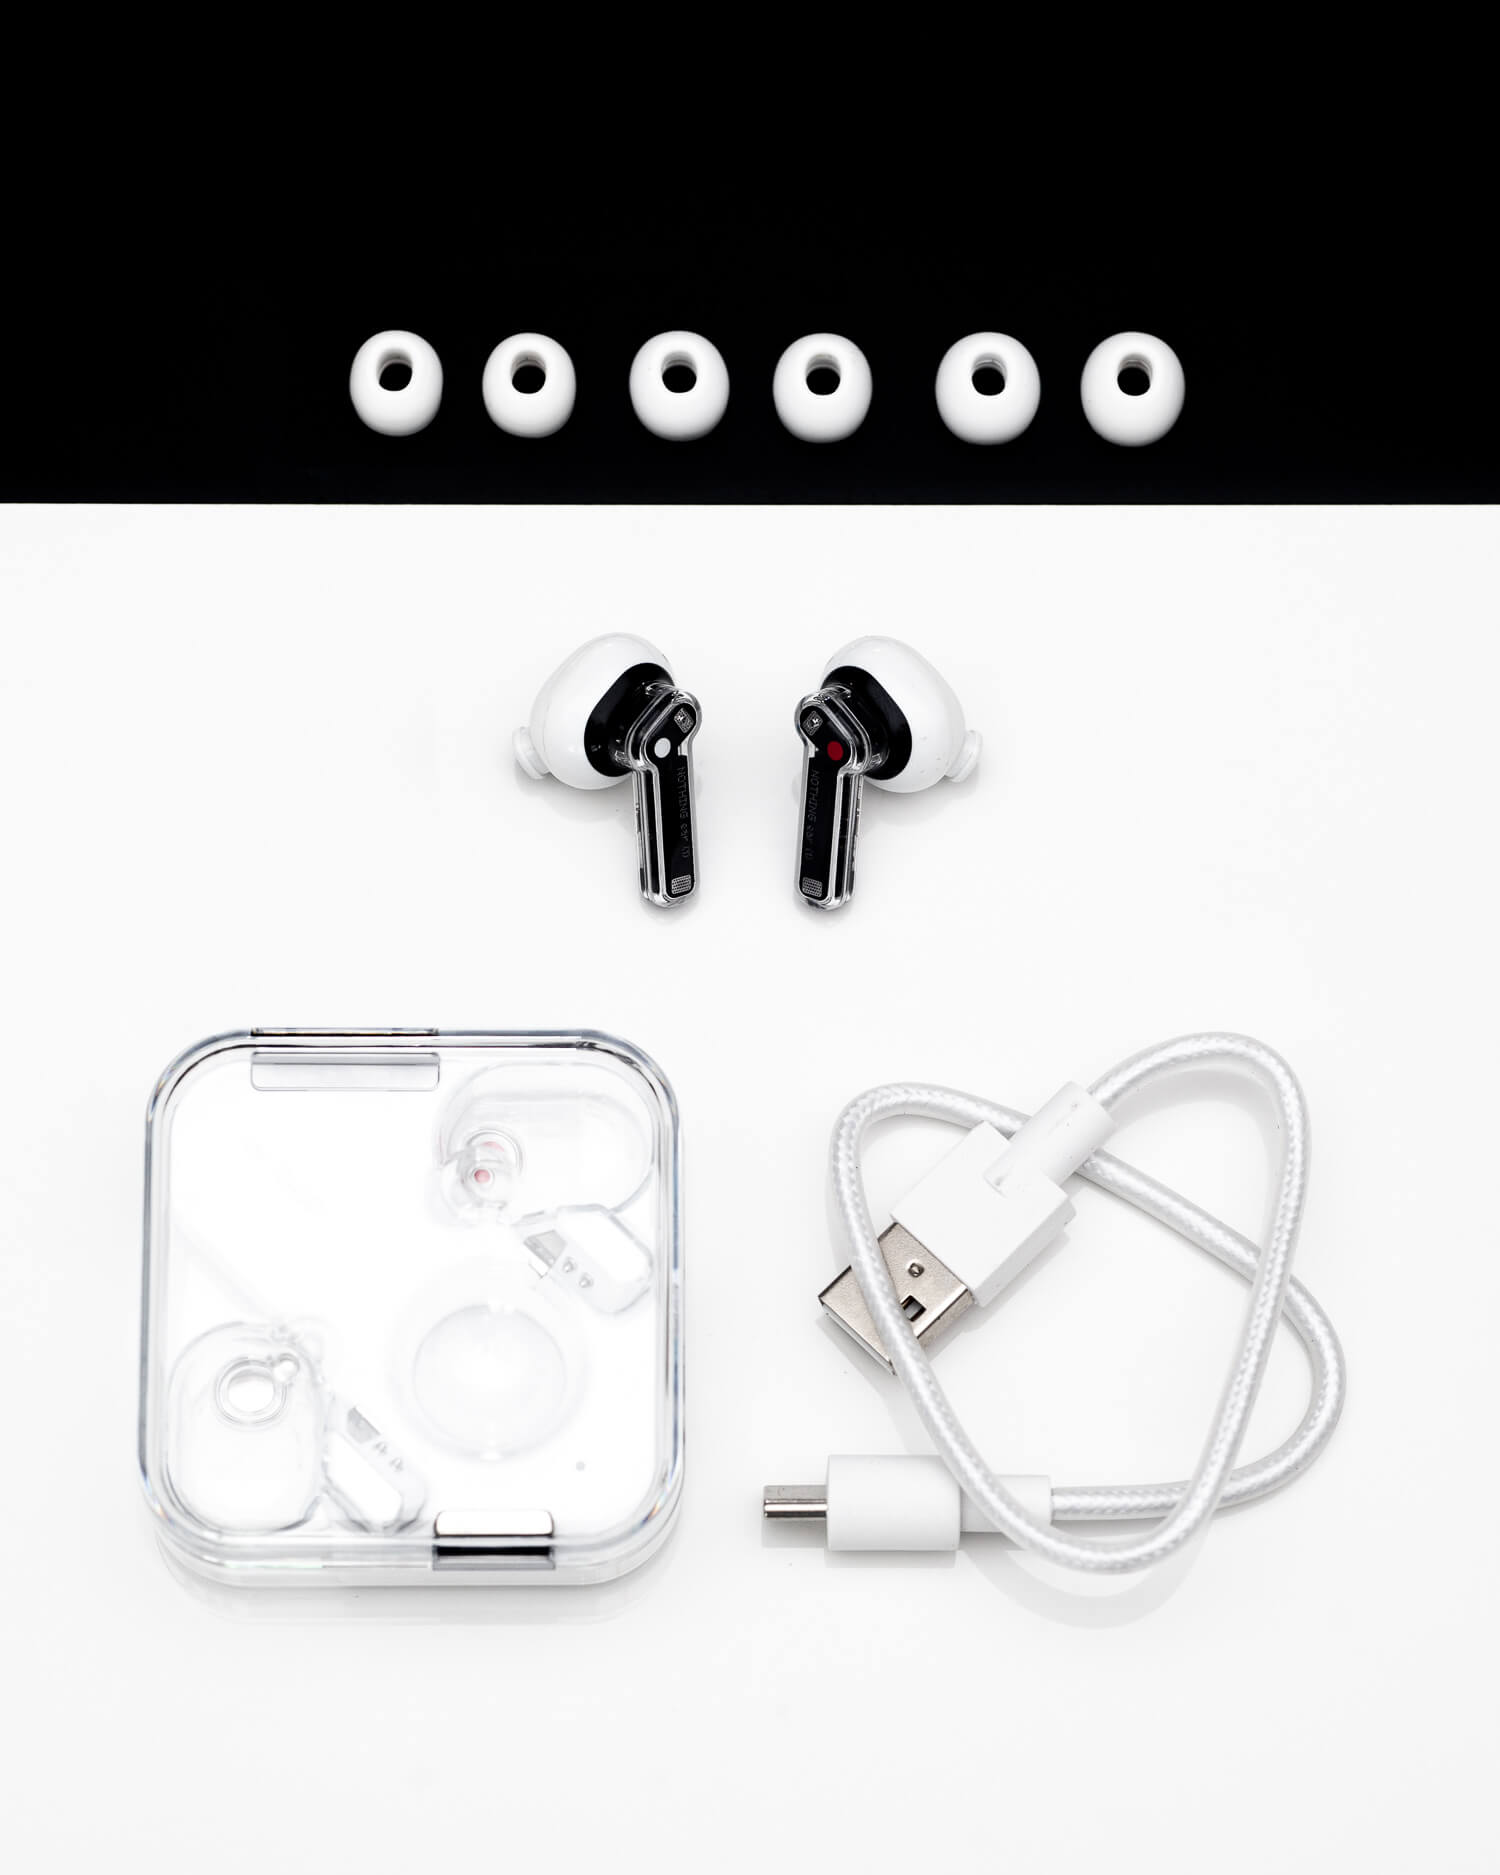 Unboxing nothing ear (1)